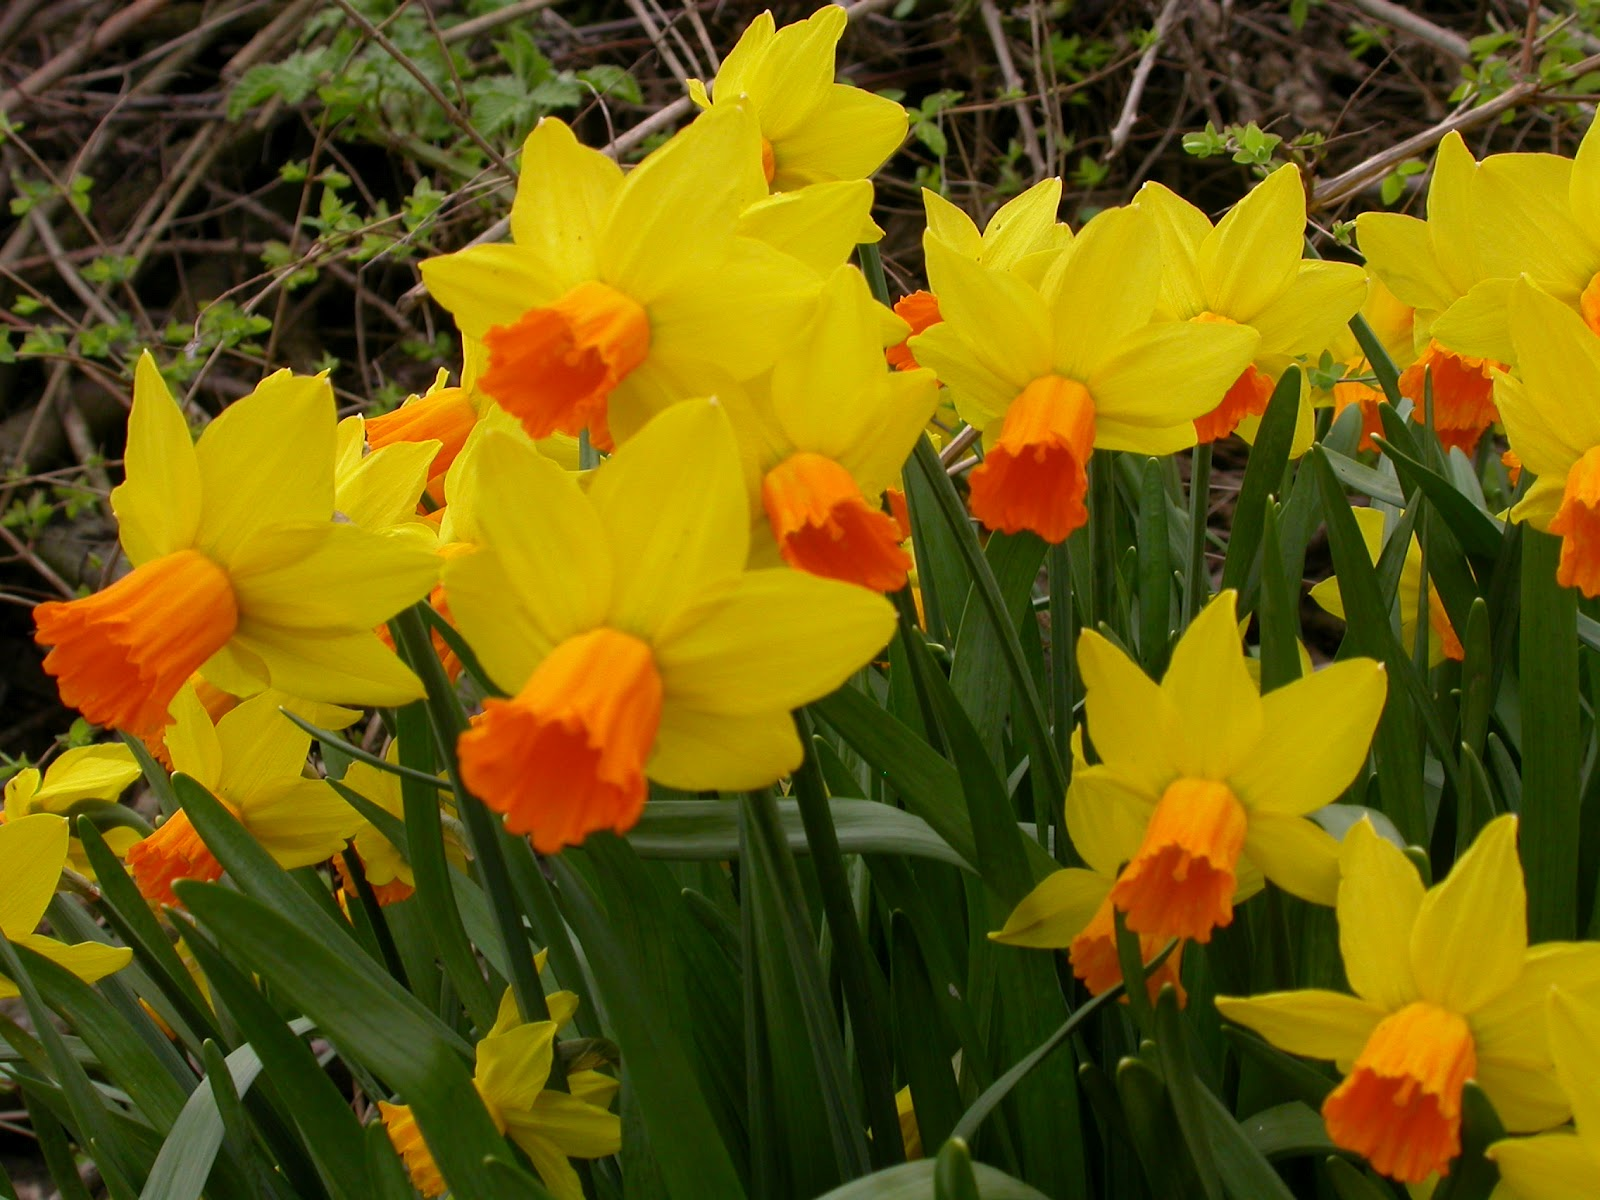 Narcissus_cyclamineus_032